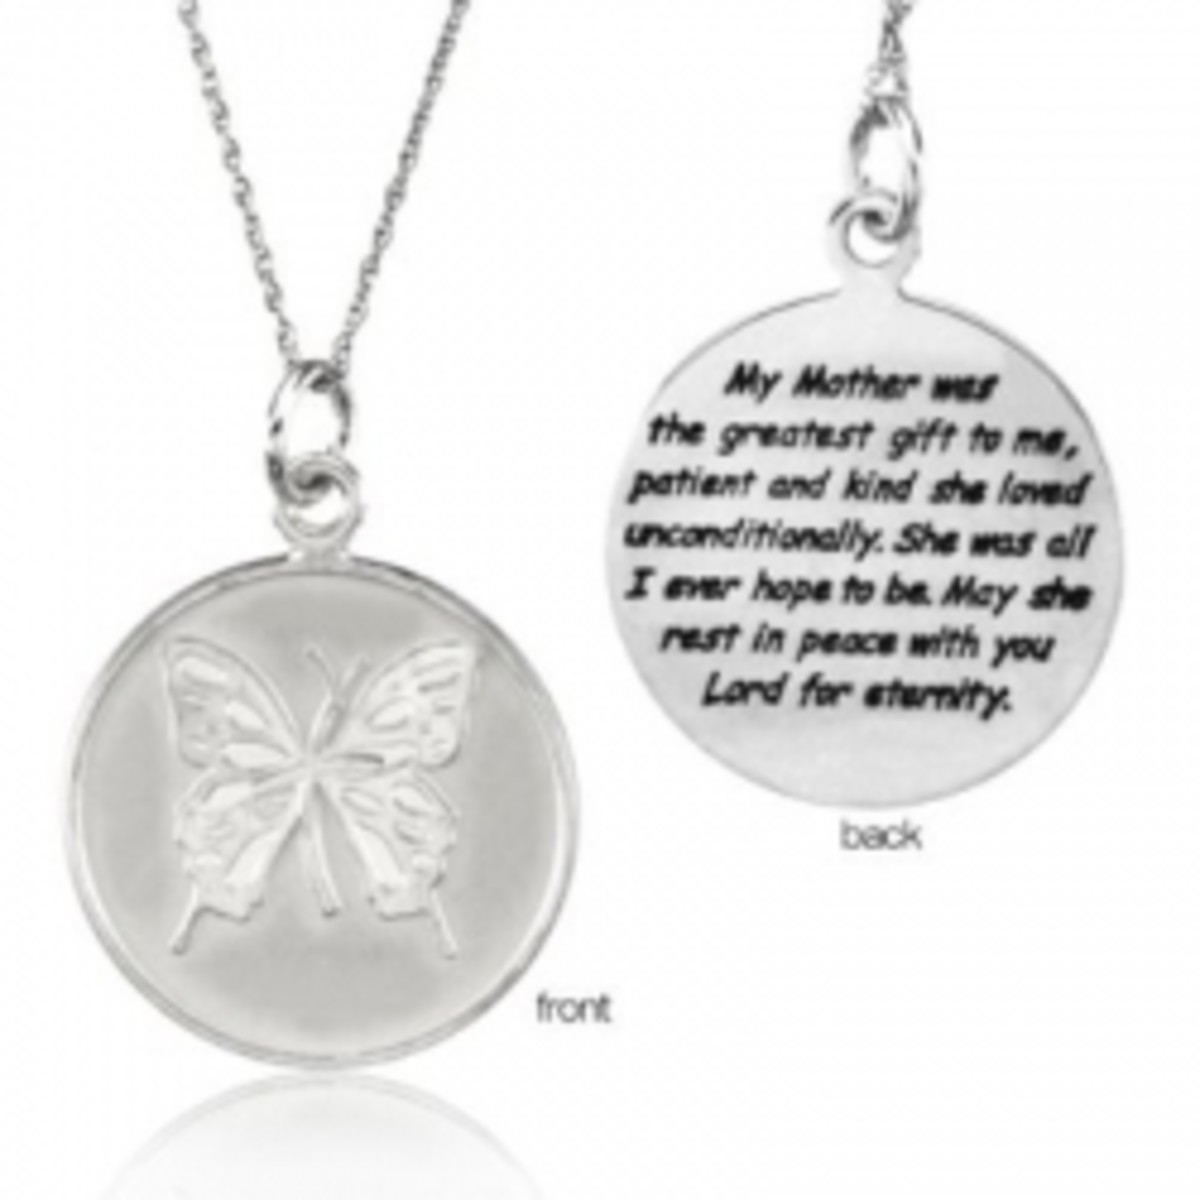 Mother's Memorial Necklace